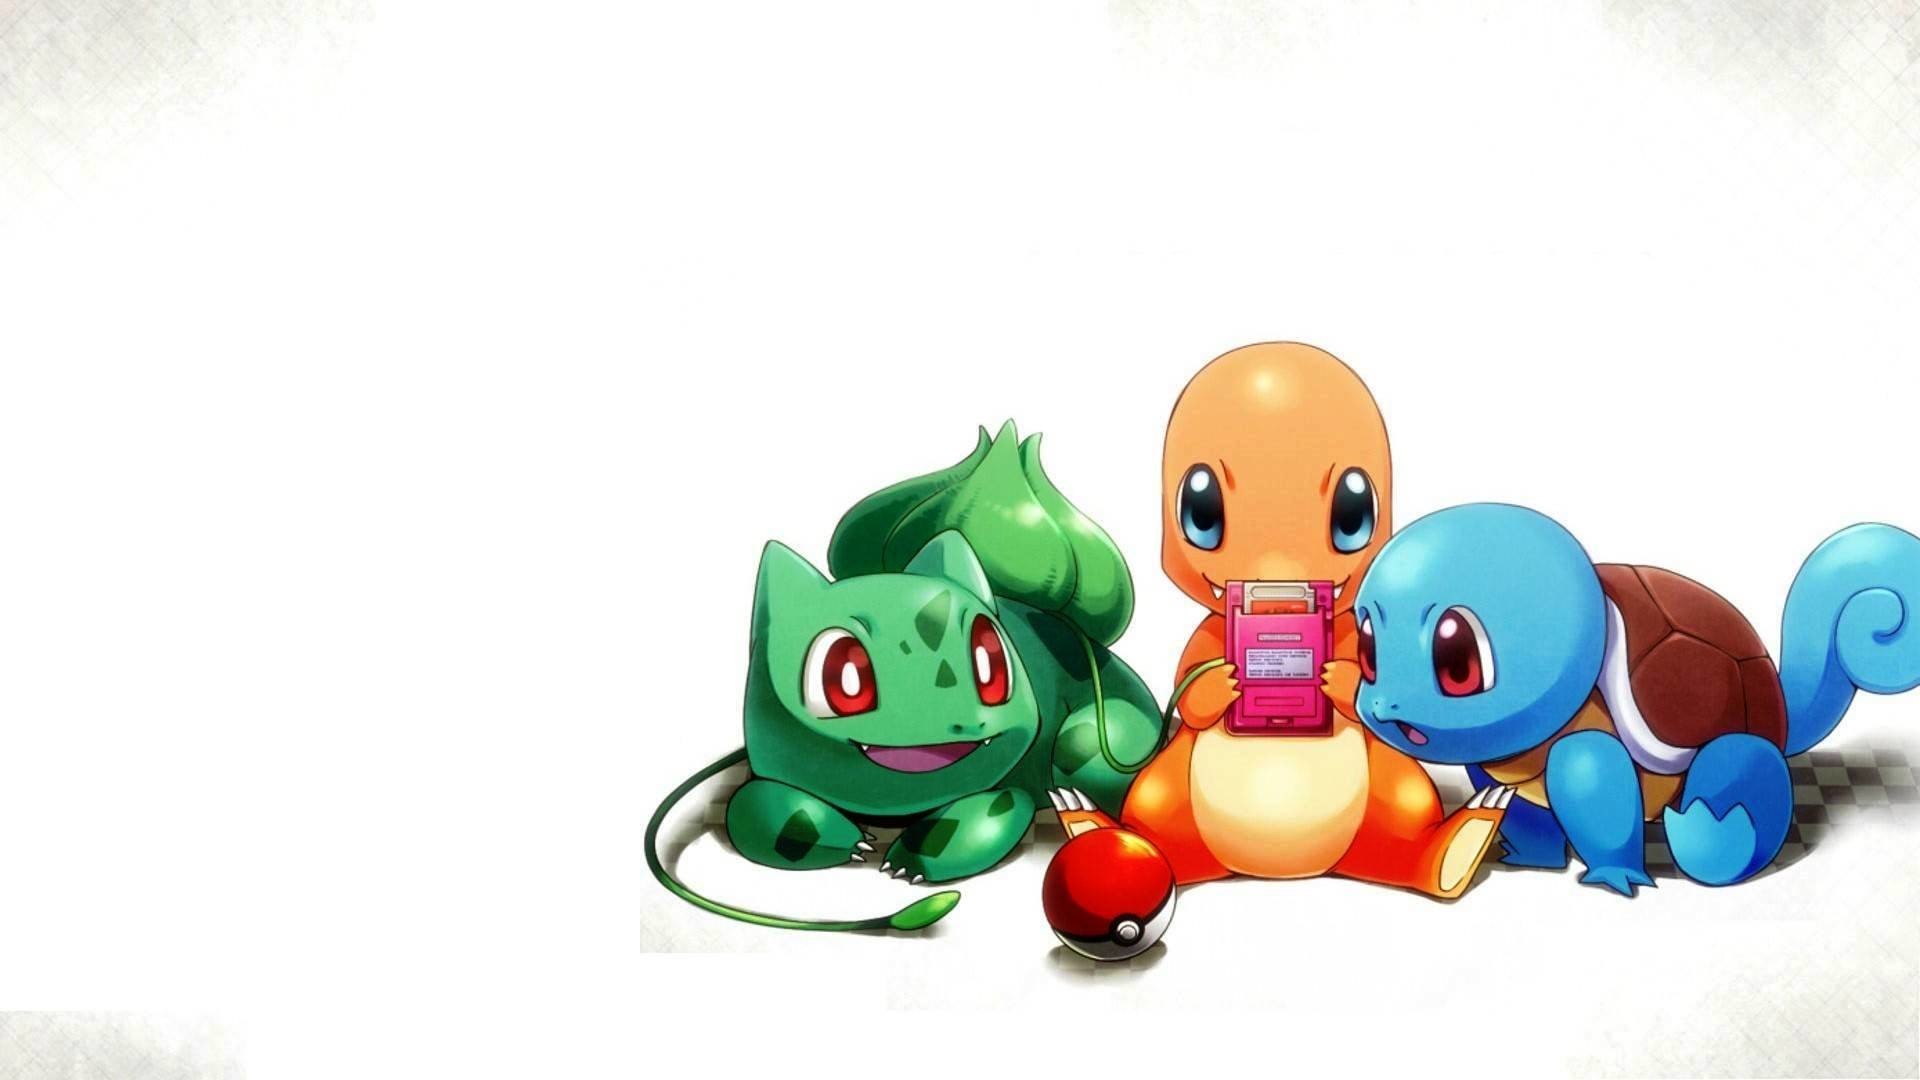 1920x1080 1600x900 Cute pokemon wallpaper mew Gallery